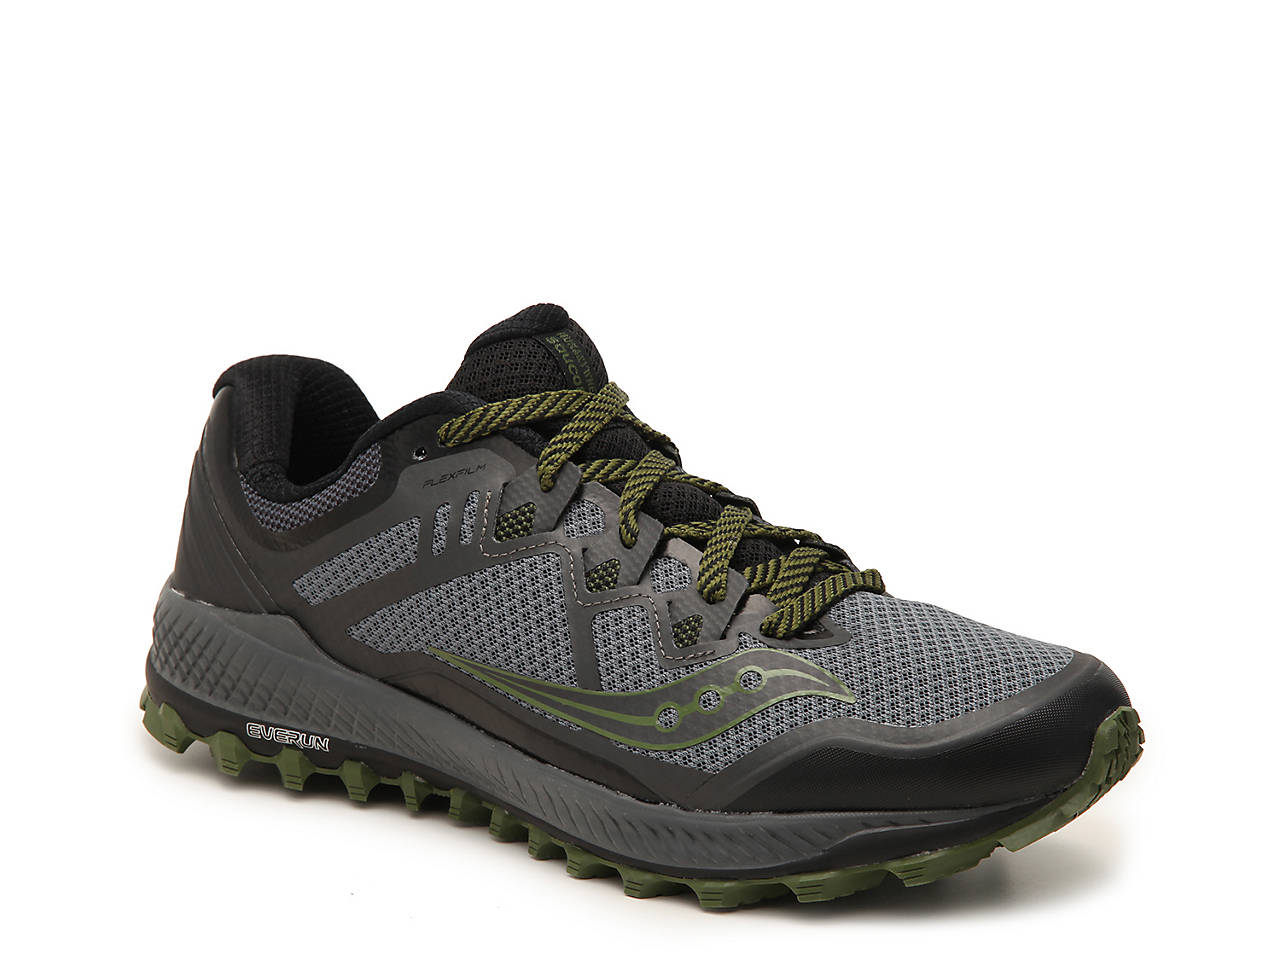 outlet store e8328 380d1 Peregrine 8 Running Shoe - Men's